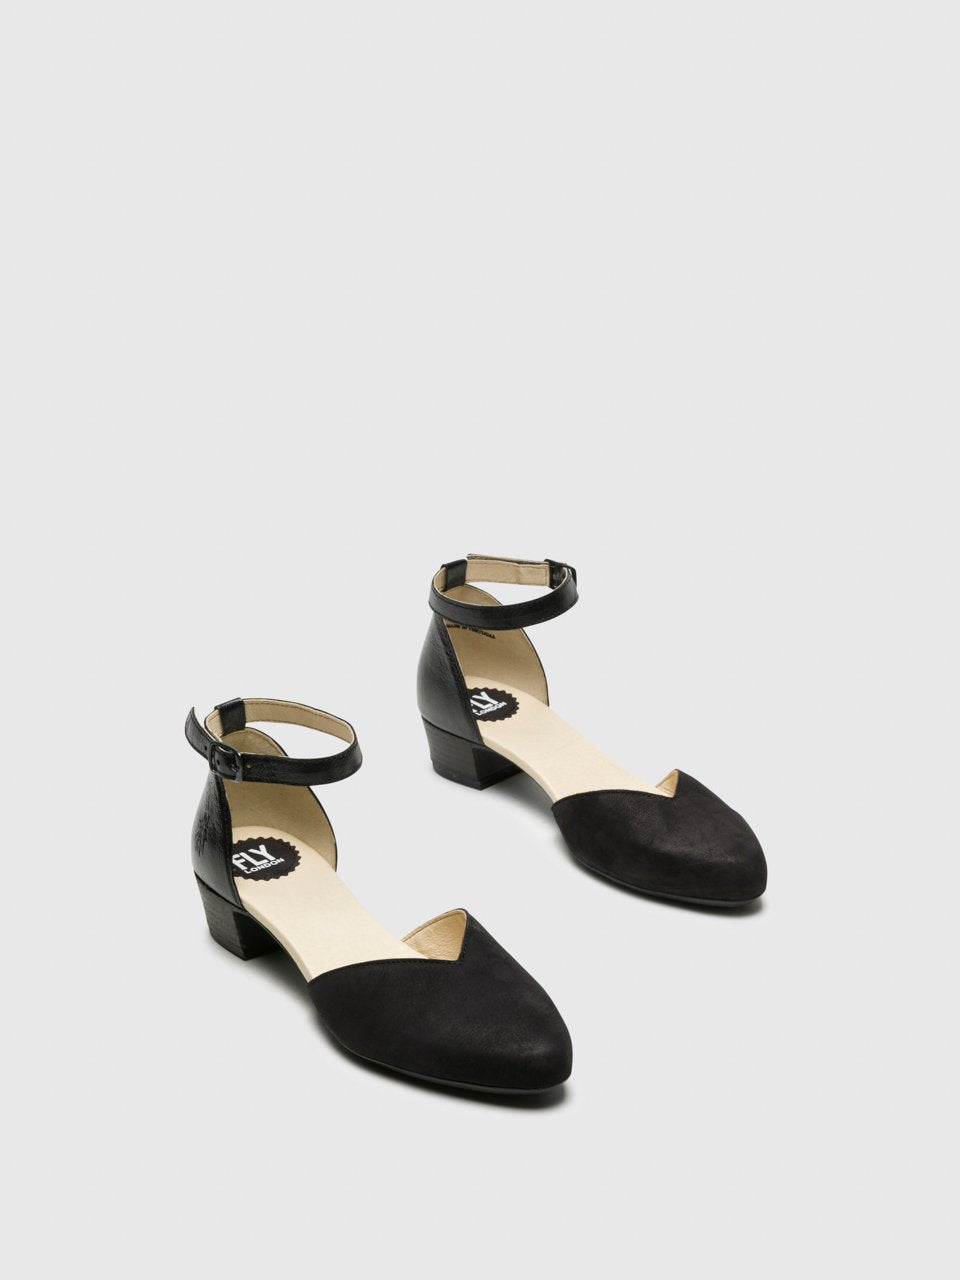 Ankle Strap Sandals LOGI459FLY BLACK/BLACK